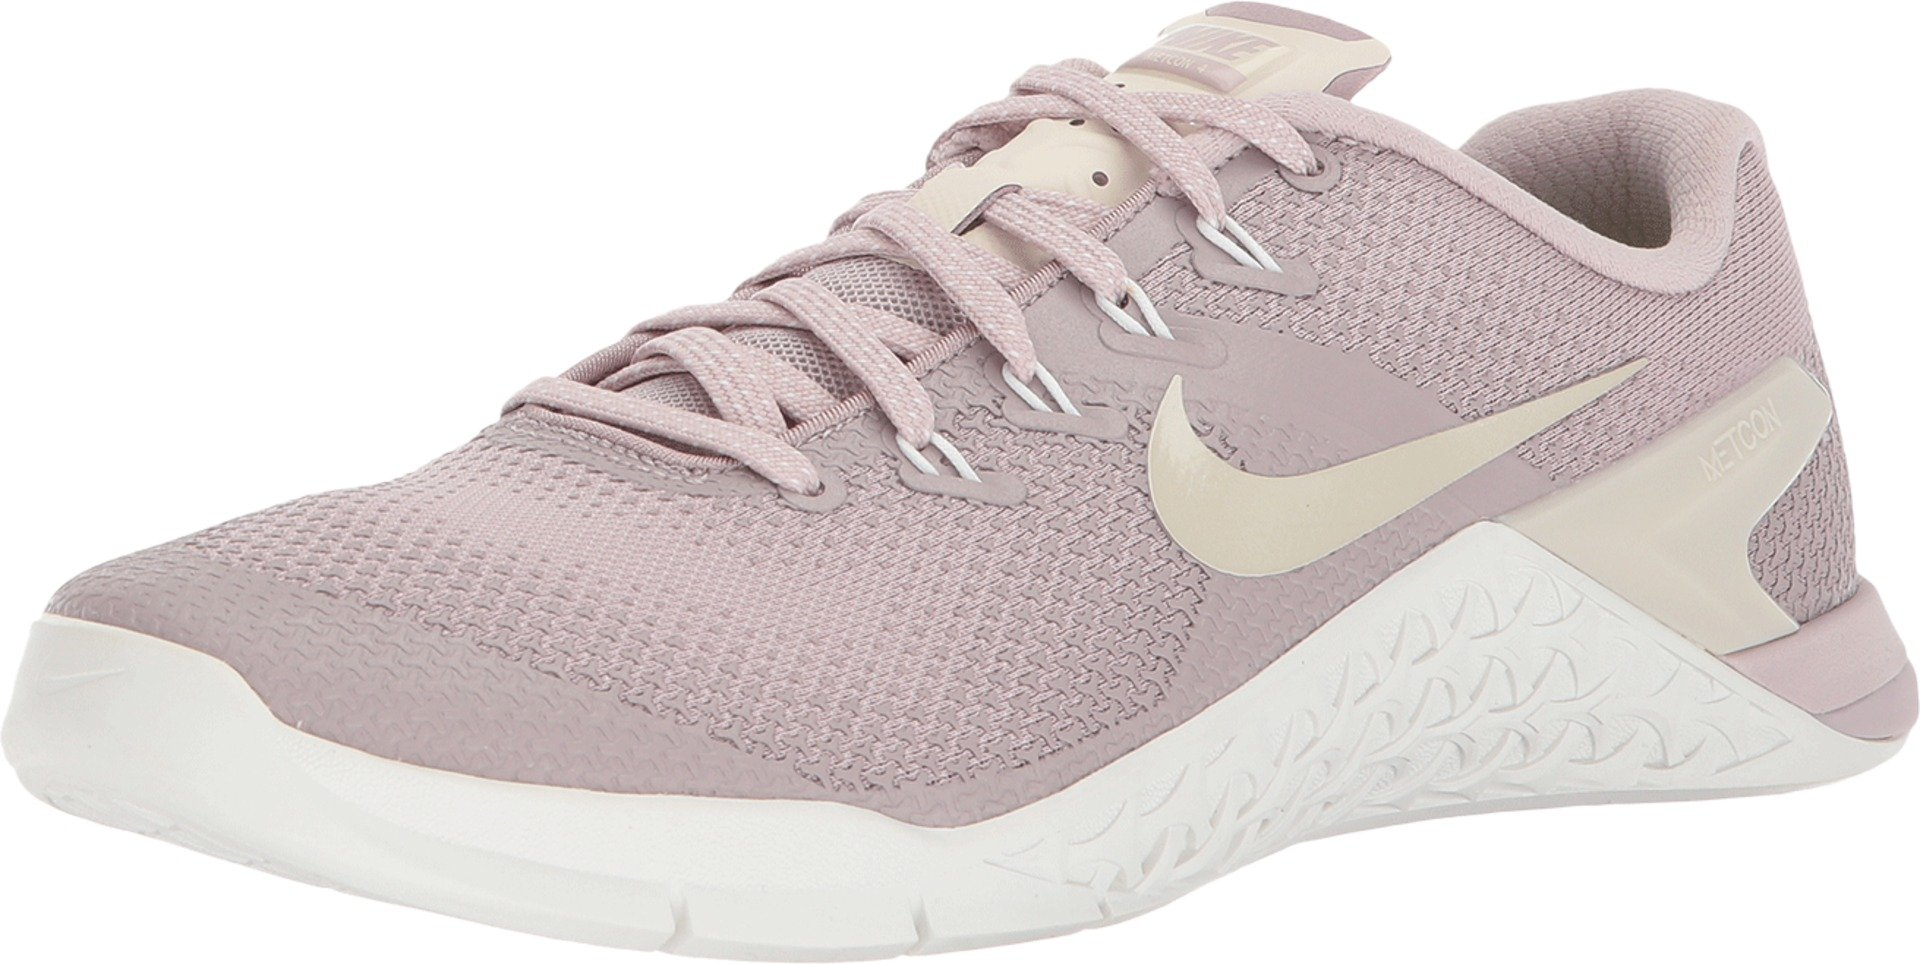 fbf33d4015b Galleon - NIKE Women Metcon 4 Training Shoe Pink (7)